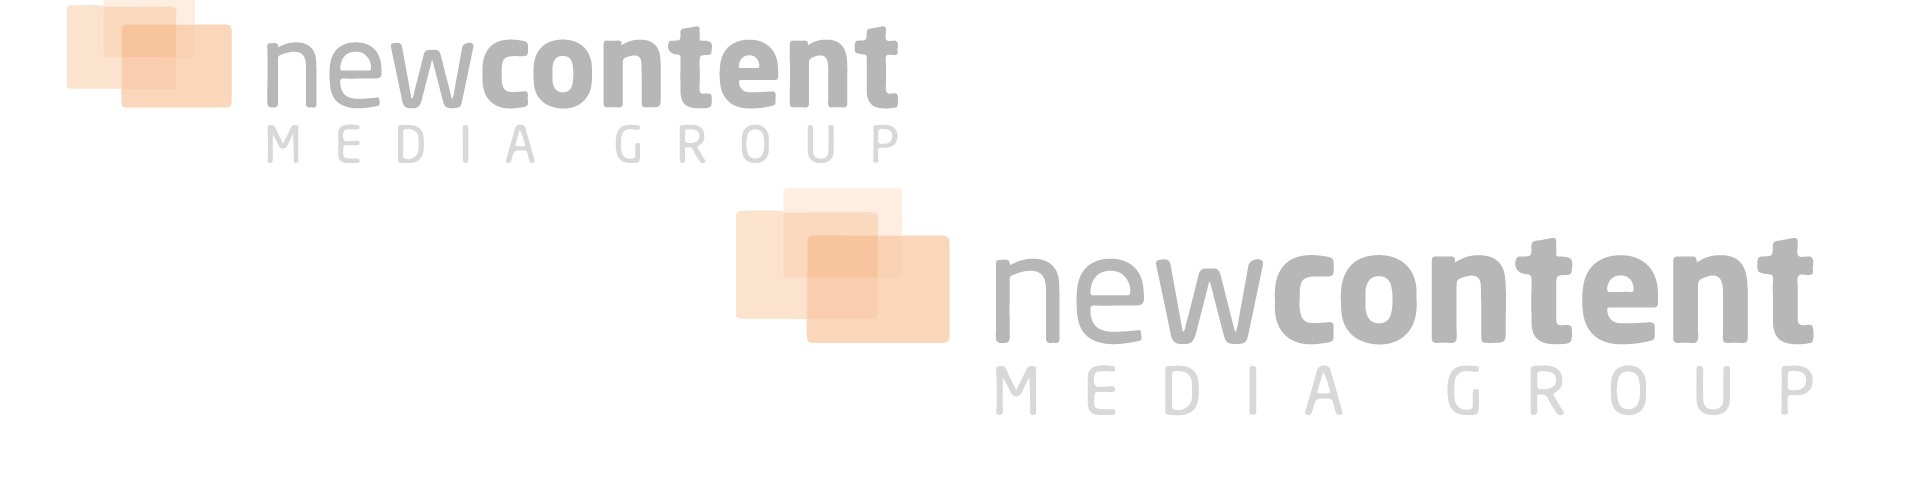 new content Media Group